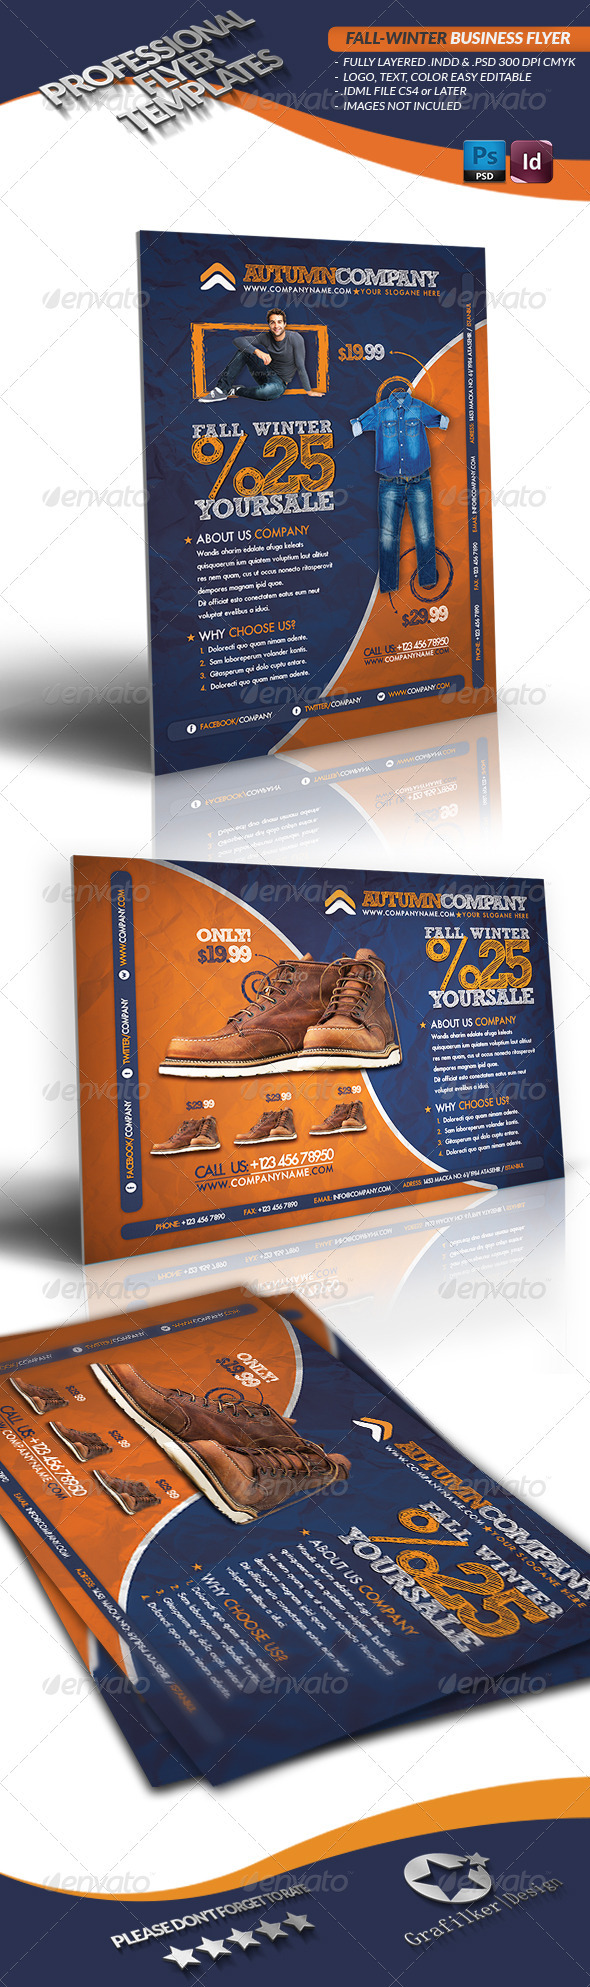 GraphicRiver Fall Winter Business Flyer 3361641